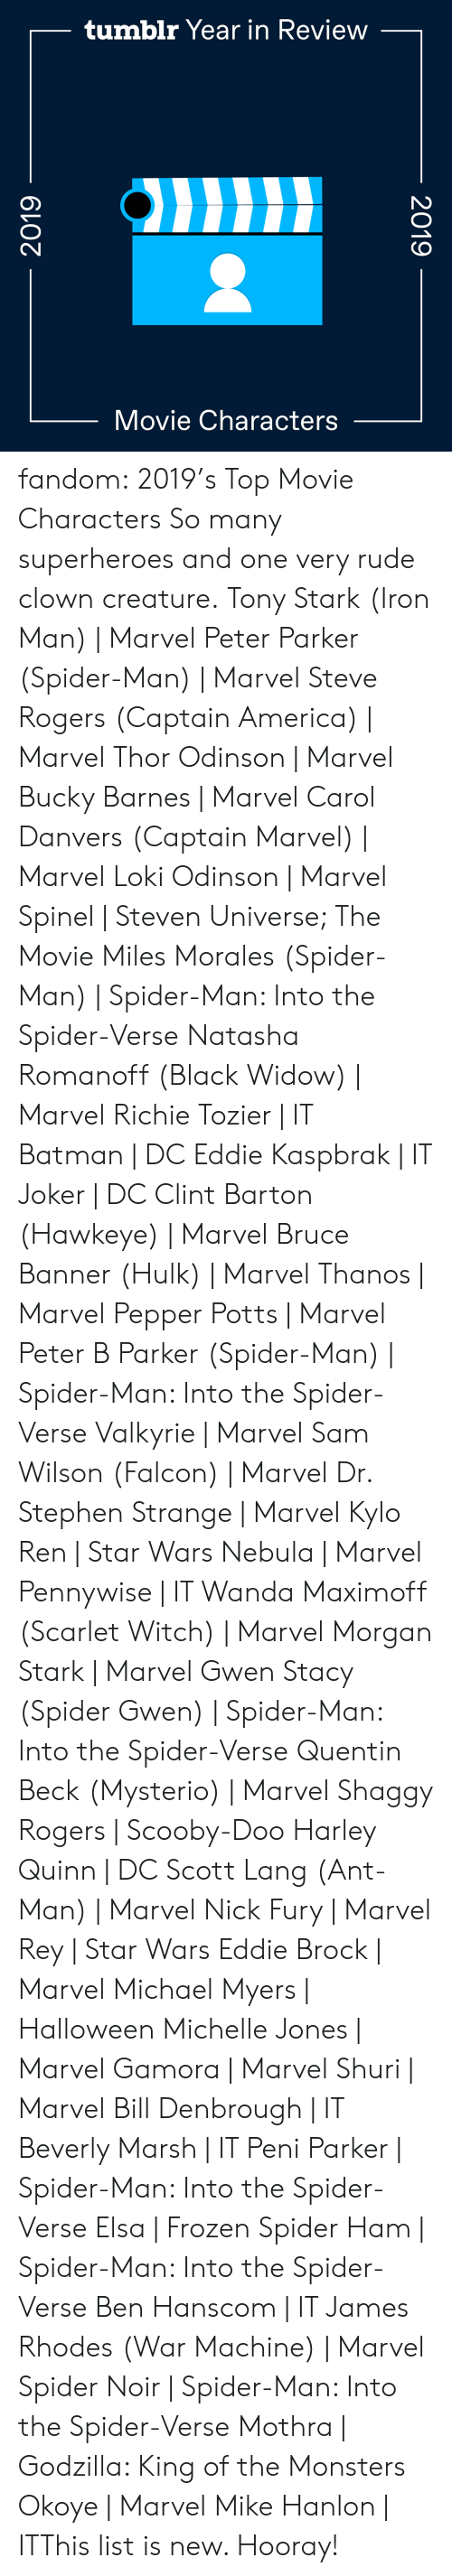 Iron Man: tumblr Year in Review  Movie Characters  2019  2019 fandom:  2019's Top Movie Characters  So many superheroes and one very rude clown creature.  Tony Stark (Iron Man) | Marvel  Peter Parker (Spider-Man) | Marvel  Steve Rogers (Captain America) | Marvel  Thor Odinson | Marvel  Bucky Barnes | Marvel  Carol Danvers (Captain Marvel) | Marvel  Loki Odinson | Marvel  Spinel | Steven Universe; The Movie  Miles Morales (Spider-Man) | Spider-Man: Into the Spider-Verse  Natasha Romanoff (Black Widow) | Marvel  Richie Tozier | IT  Batman | DC  Eddie Kaspbrak | IT  Joker | DC  Clint Barton (Hawkeye) | Marvel  Bruce Banner (Hulk) | Marvel  Thanos | Marvel  Pepper Potts | Marvel  Peter B Parker (Spider-Man) | Spider-Man: Into the Spider-Verse  Valkyrie | Marvel  Sam Wilson (Falcon) | Marvel  Dr. Stephen Strange | Marvel  Kylo Ren | Star Wars  Nebula | Marvel  Pennywise | IT  Wanda Maximoff (Scarlet Witch) | Marvel  Morgan Stark | Marvel  Gwen Stacy (Spider Gwen) | Spider-Man: Into the Spider-Verse  Quentin Beck (Mysterio) | Marvel  Shaggy Rogers | Scooby-Doo  Harley Quinn | DC  Scott Lang (Ant-Man) | Marvel  Nick Fury | Marvel  Rey | Star Wars  Eddie Brock | Marvel  Michael Myers | Halloween  Michelle Jones | Marvel  Gamora | Marvel  Shuri | Marvel  Bill Denbrough | IT  Beverly Marsh | IT  Peni Parker | Spider-Man: Into the Spider-Verse  Elsa | Frozen  Spider Ham | Spider-Man: Into the Spider-Verse  Ben Hanscom | IT  James Rhodes (War Machine) | Marvel  Spider Noir | Spider-Man: Into the Spider-Verse  Mothra | Godzilla: King of the Monsters  Okoye | Marvel Mike Hanlon | ITThis list is new. Hooray!